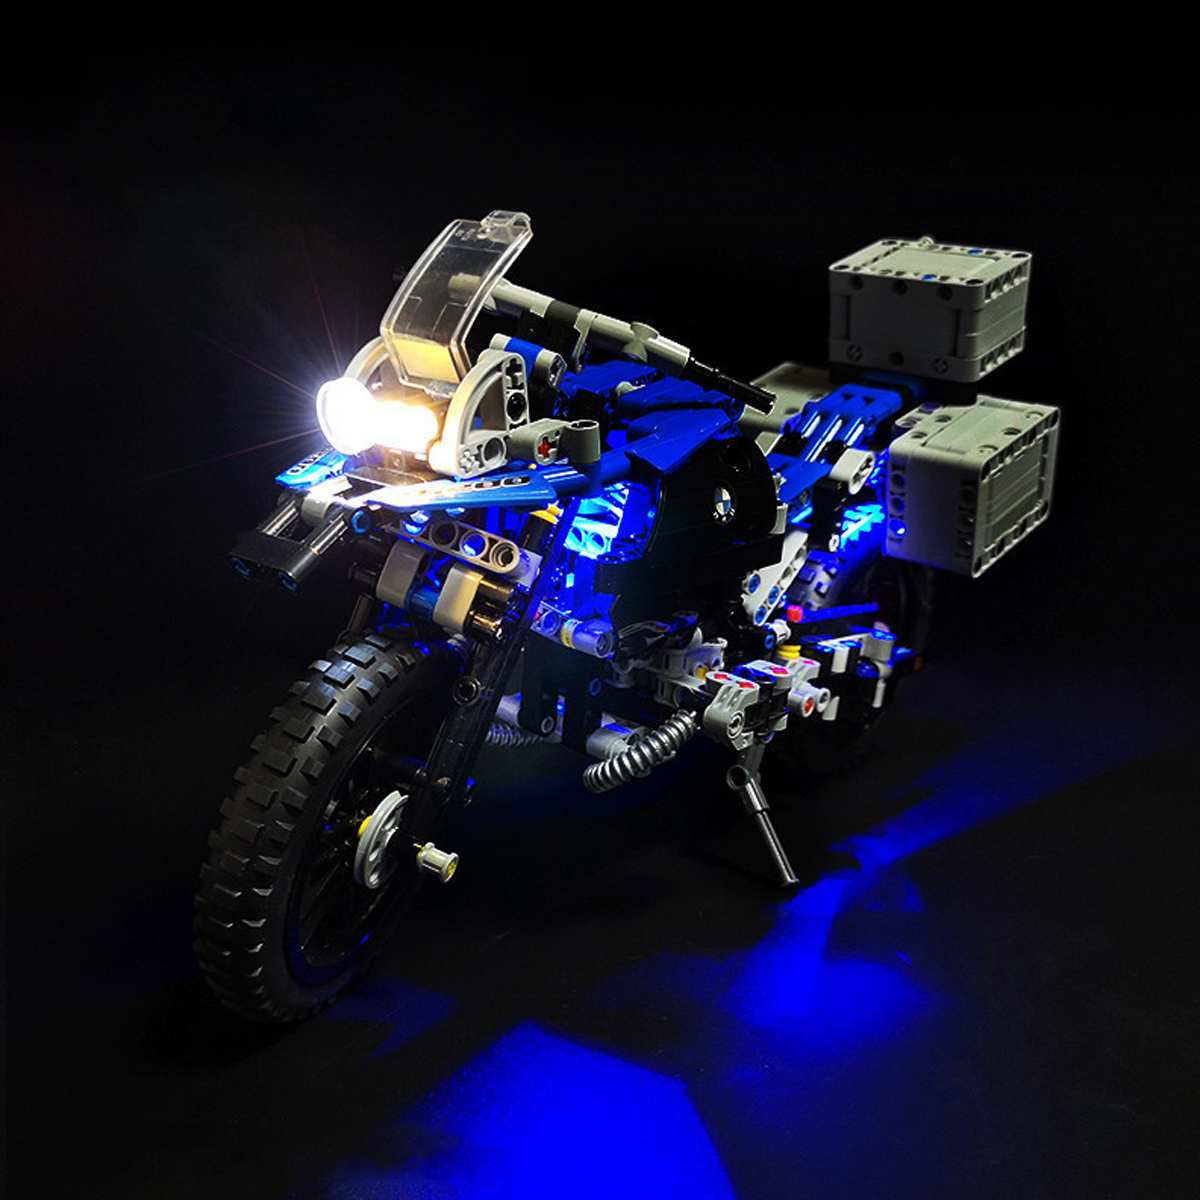 LED Light Kit  For 42063 Technic Series For BMW R 1200 GS Adventure Motorcycles Blocks (Model Not Included)